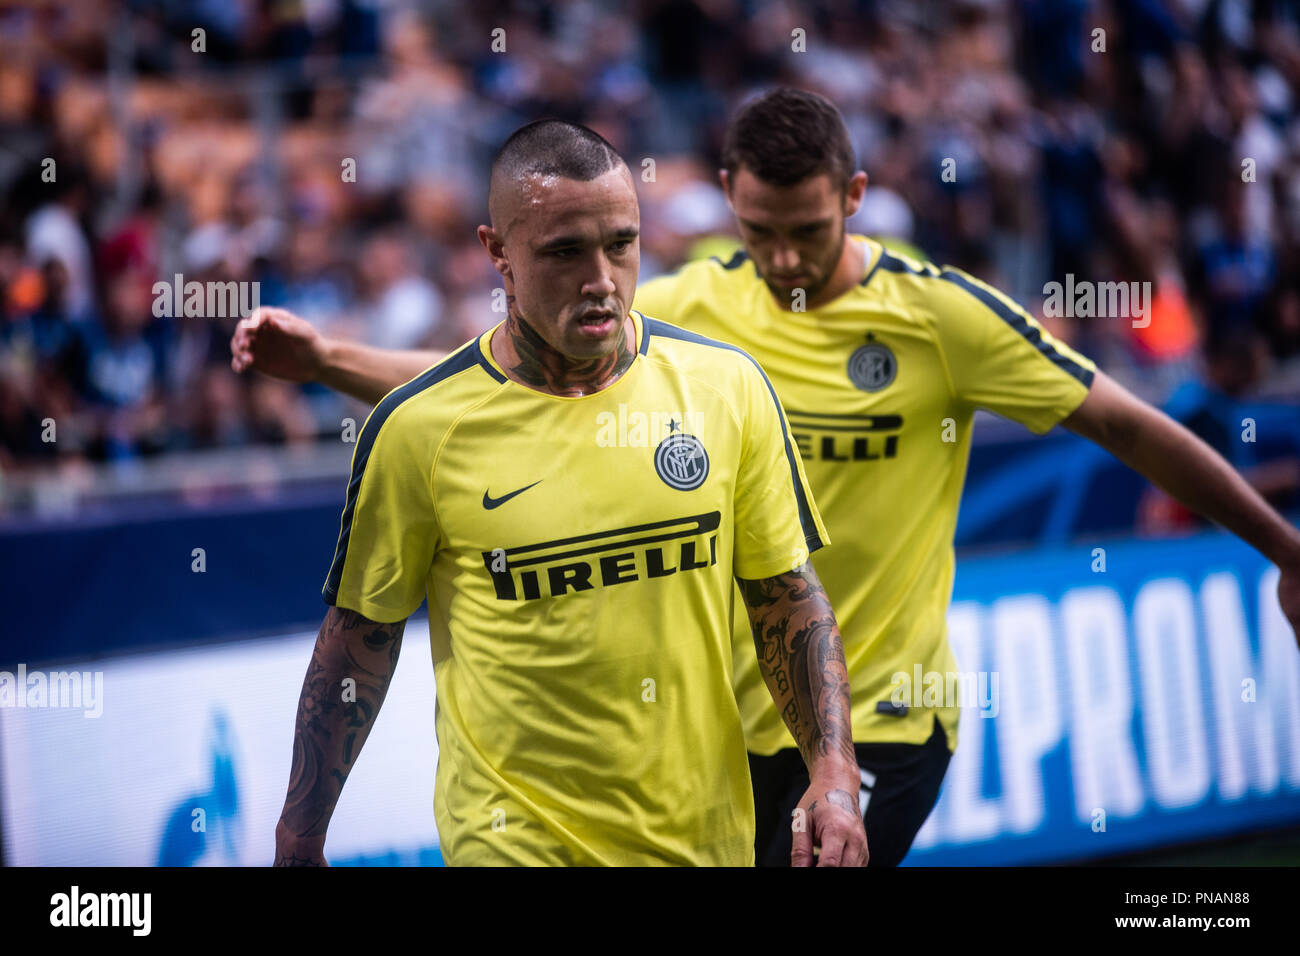 buy cheap 4fd80 77376 Radja Nainggolan (Inter Milan) during the UEFA Champions ...